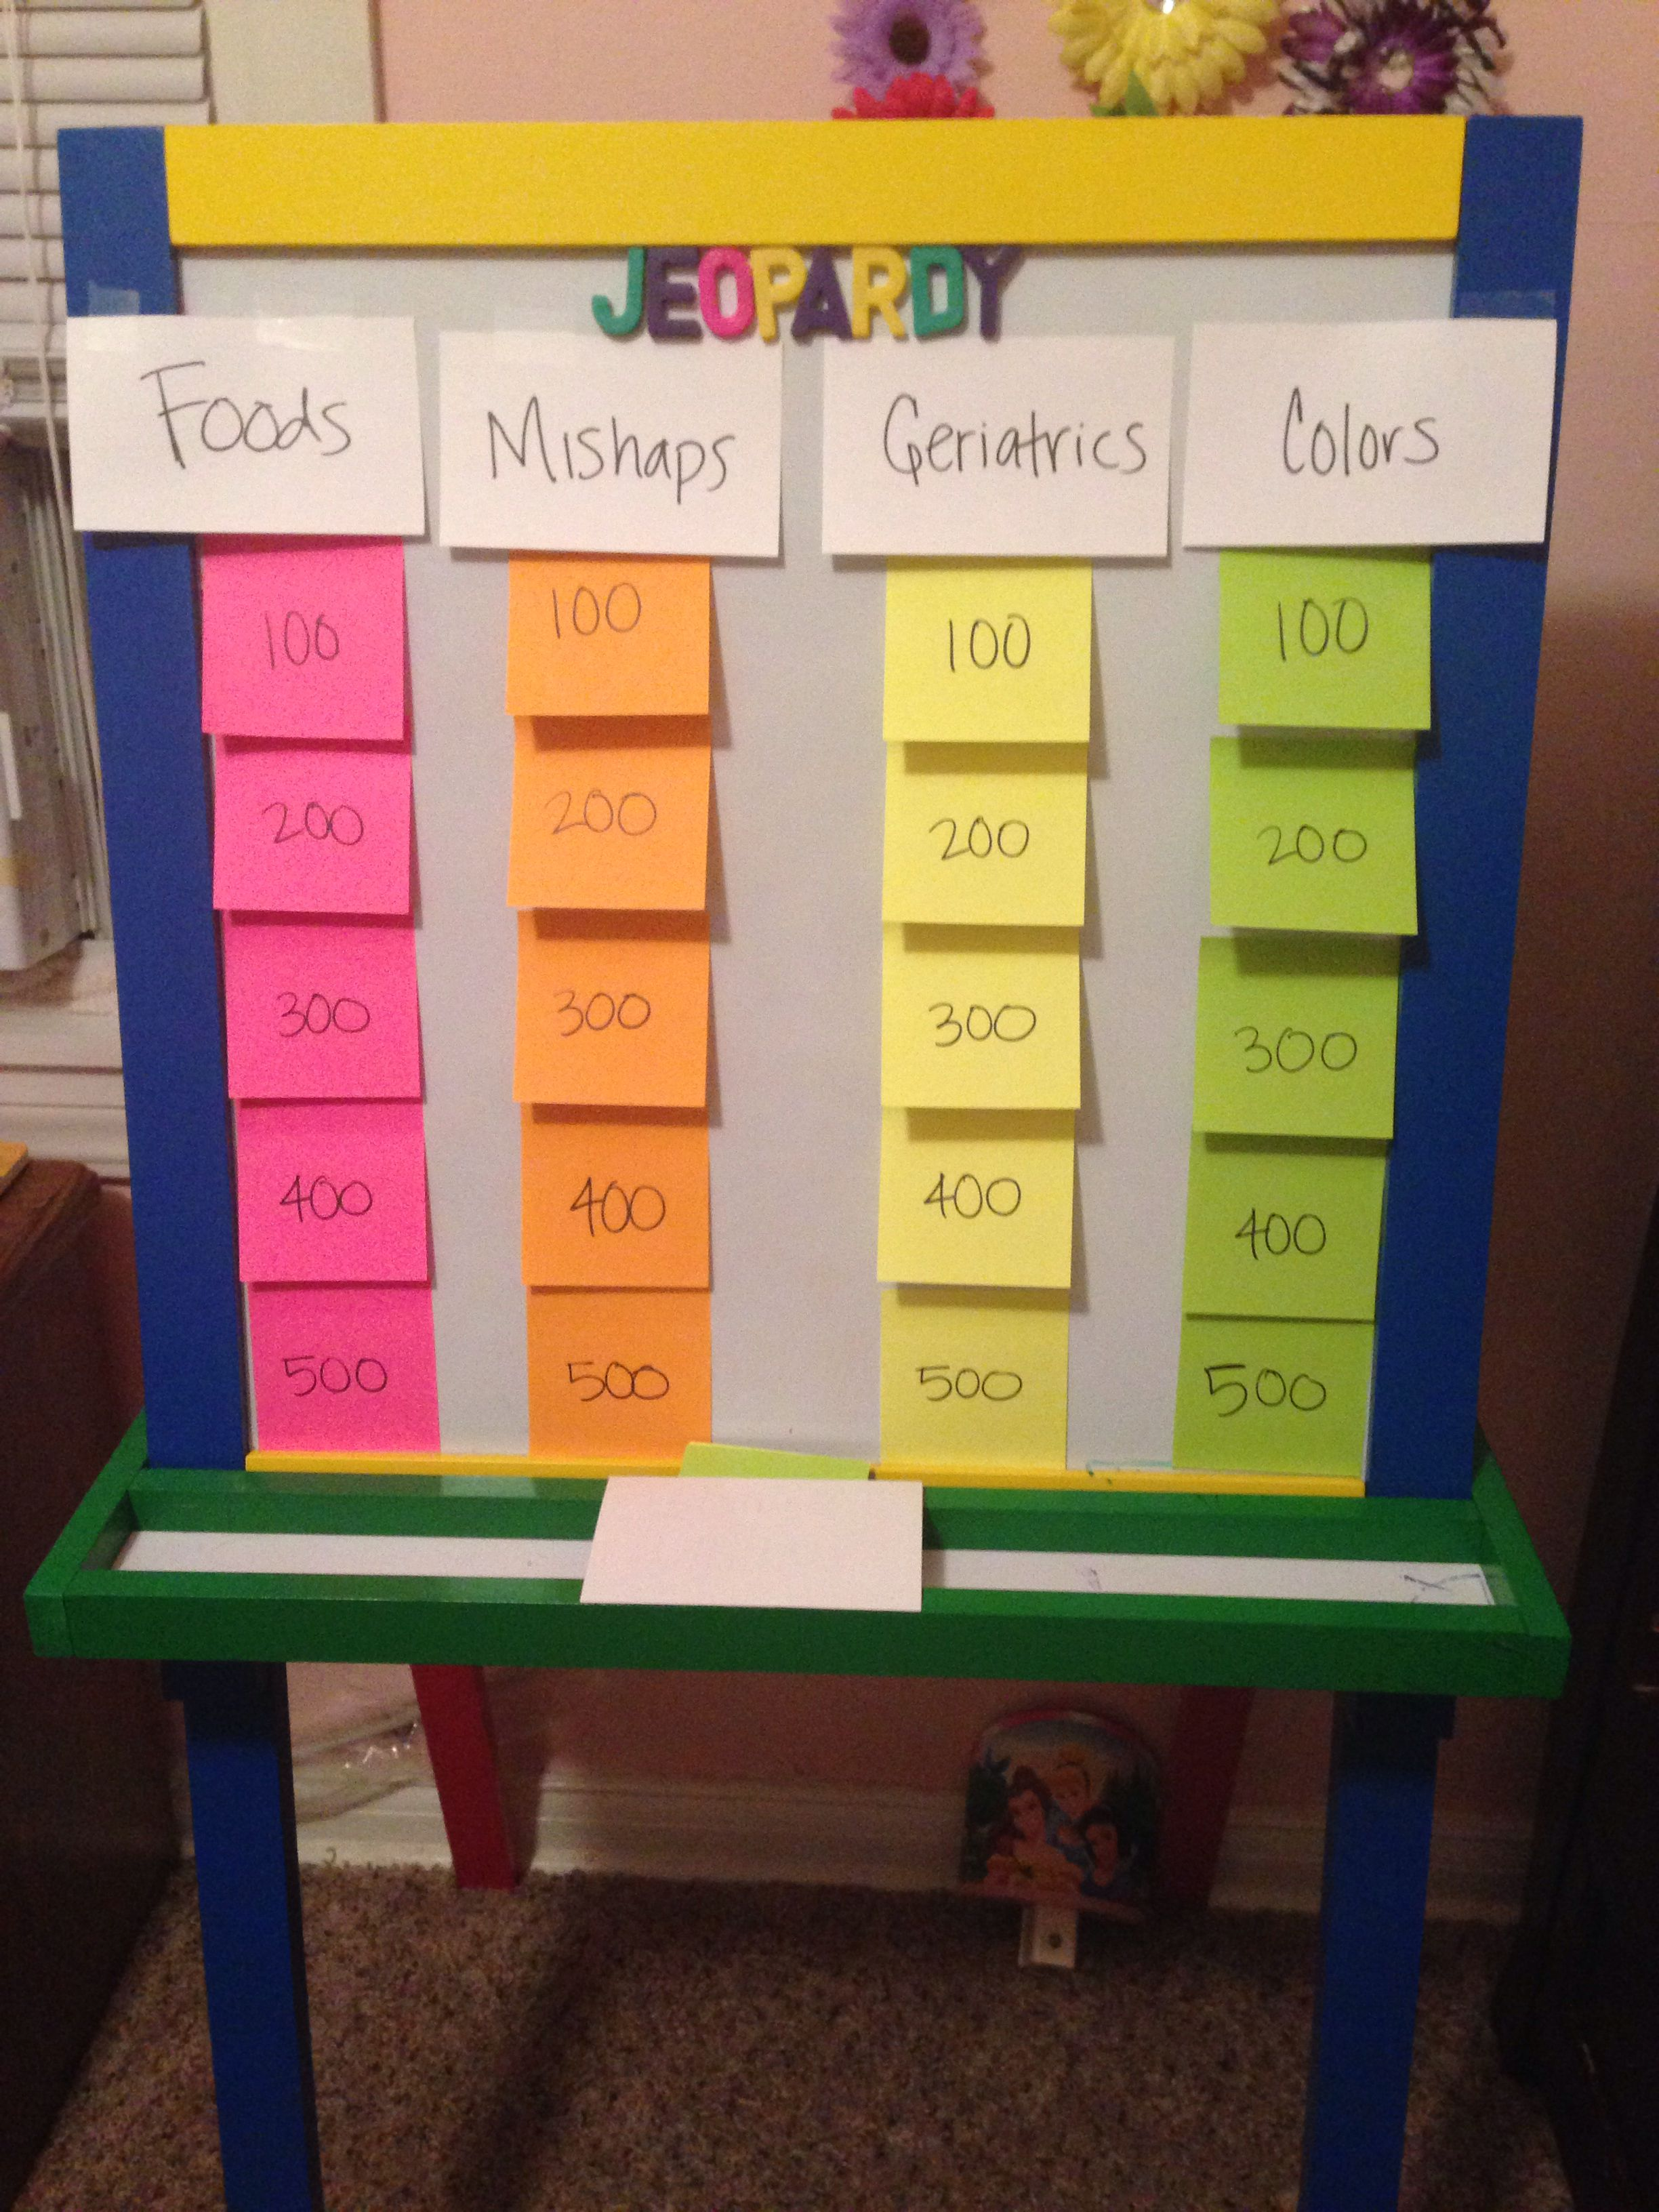 Jeopardy baby shower game create different categories